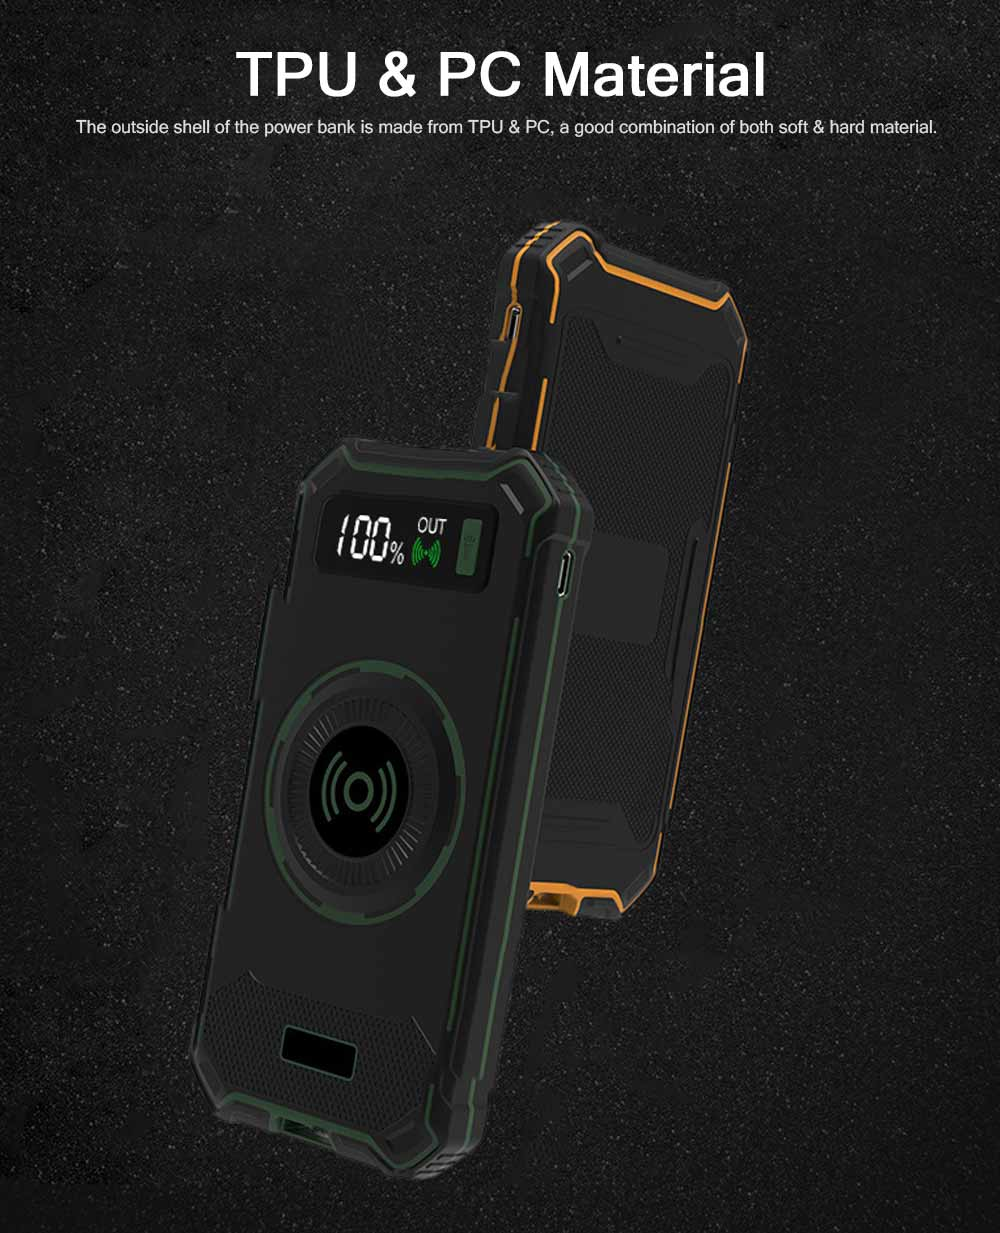 Wireless Power Bank with Display for Outdoor Use, Mobile Power Bank 10000mAh Ultra Slim Quick Charge with Wall Plug 2